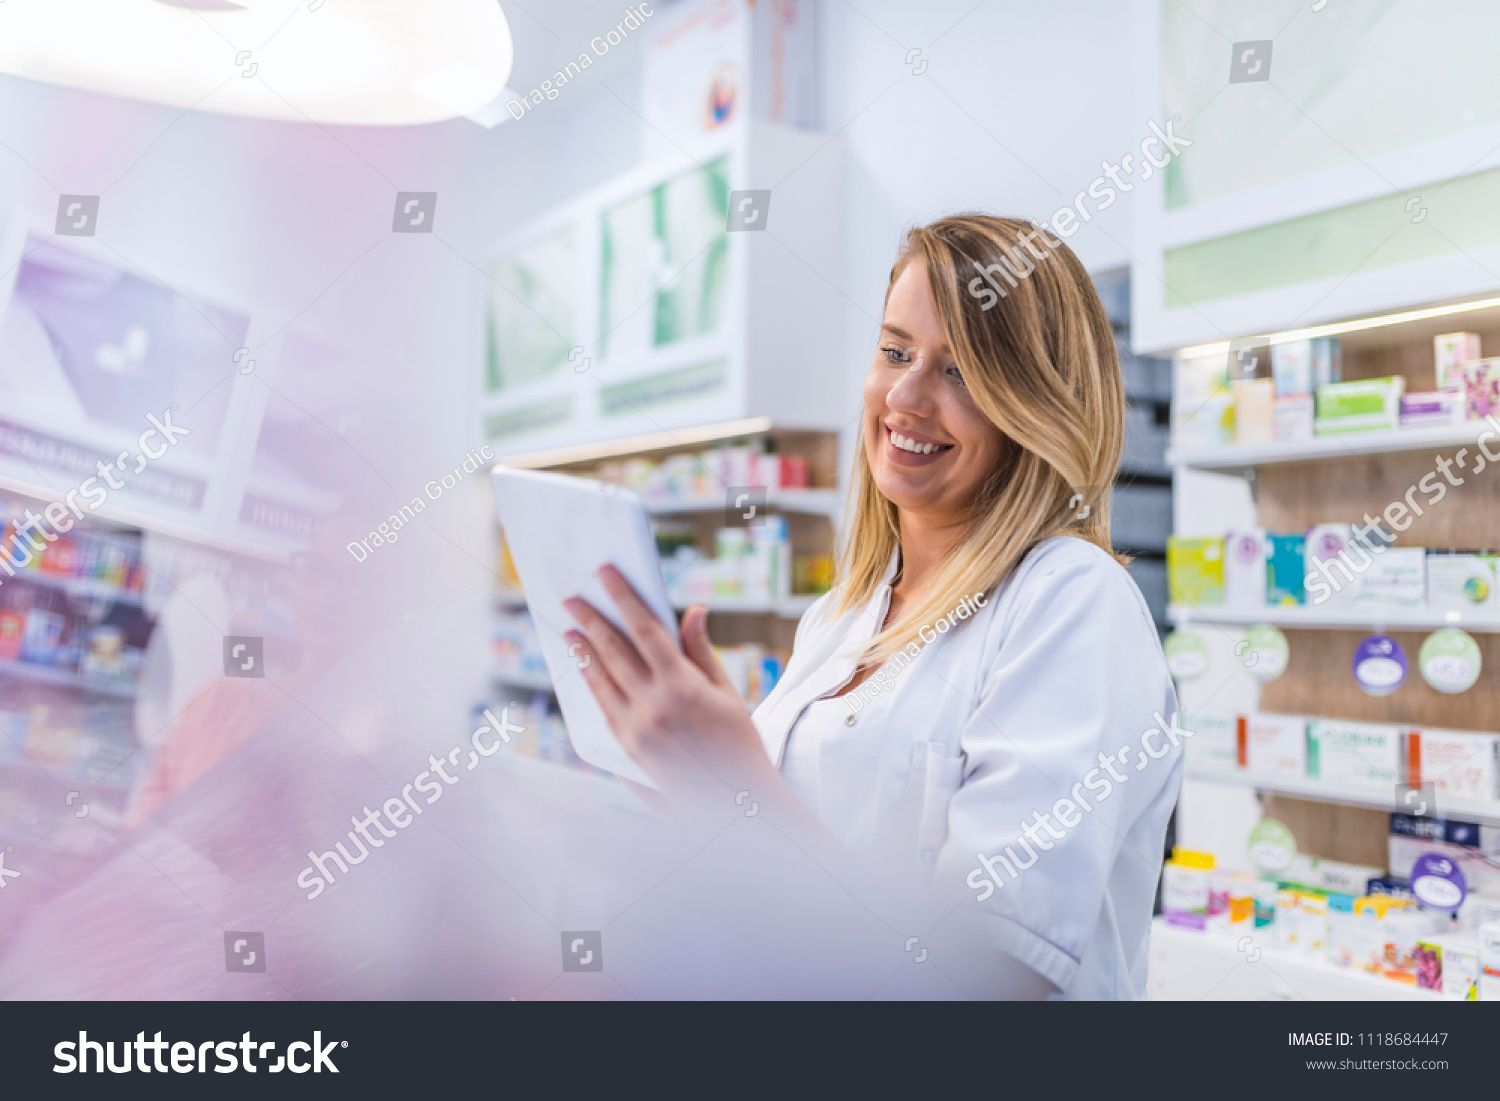 Pharmacist working with a tablet computer in the pharmacy